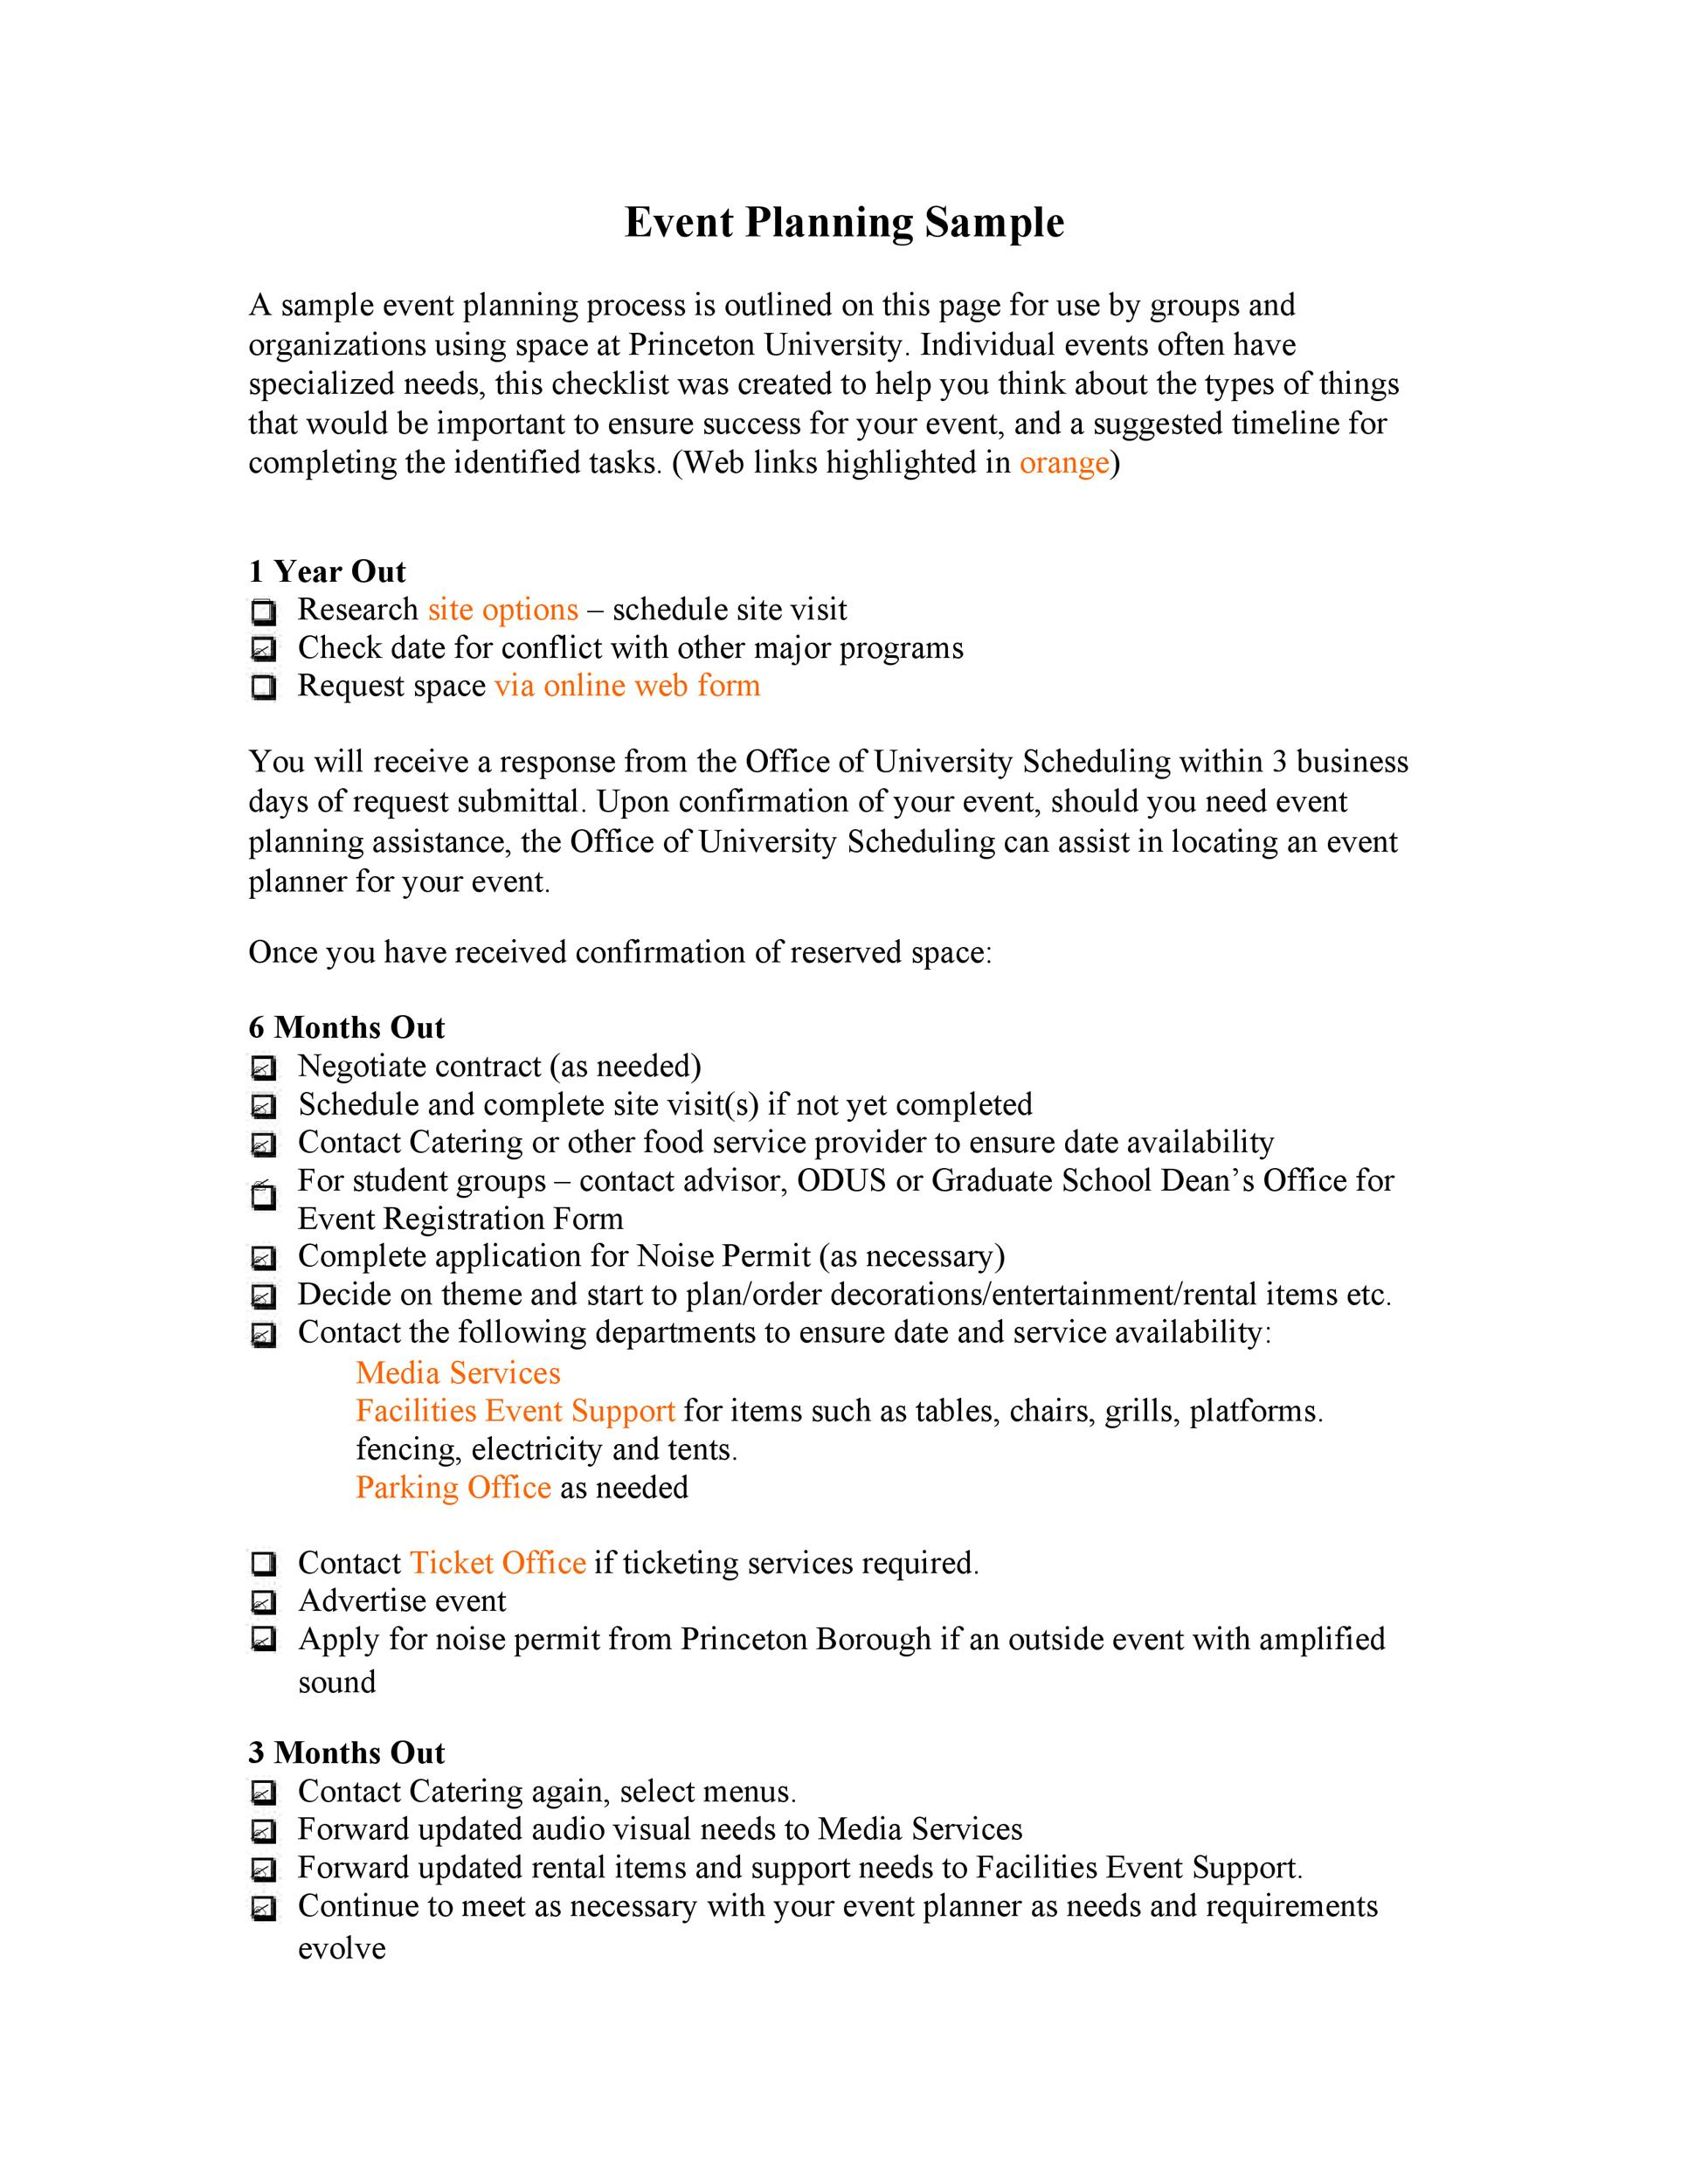 50 Professional Event Planning Checklist Templates - Template Lab - events planning template